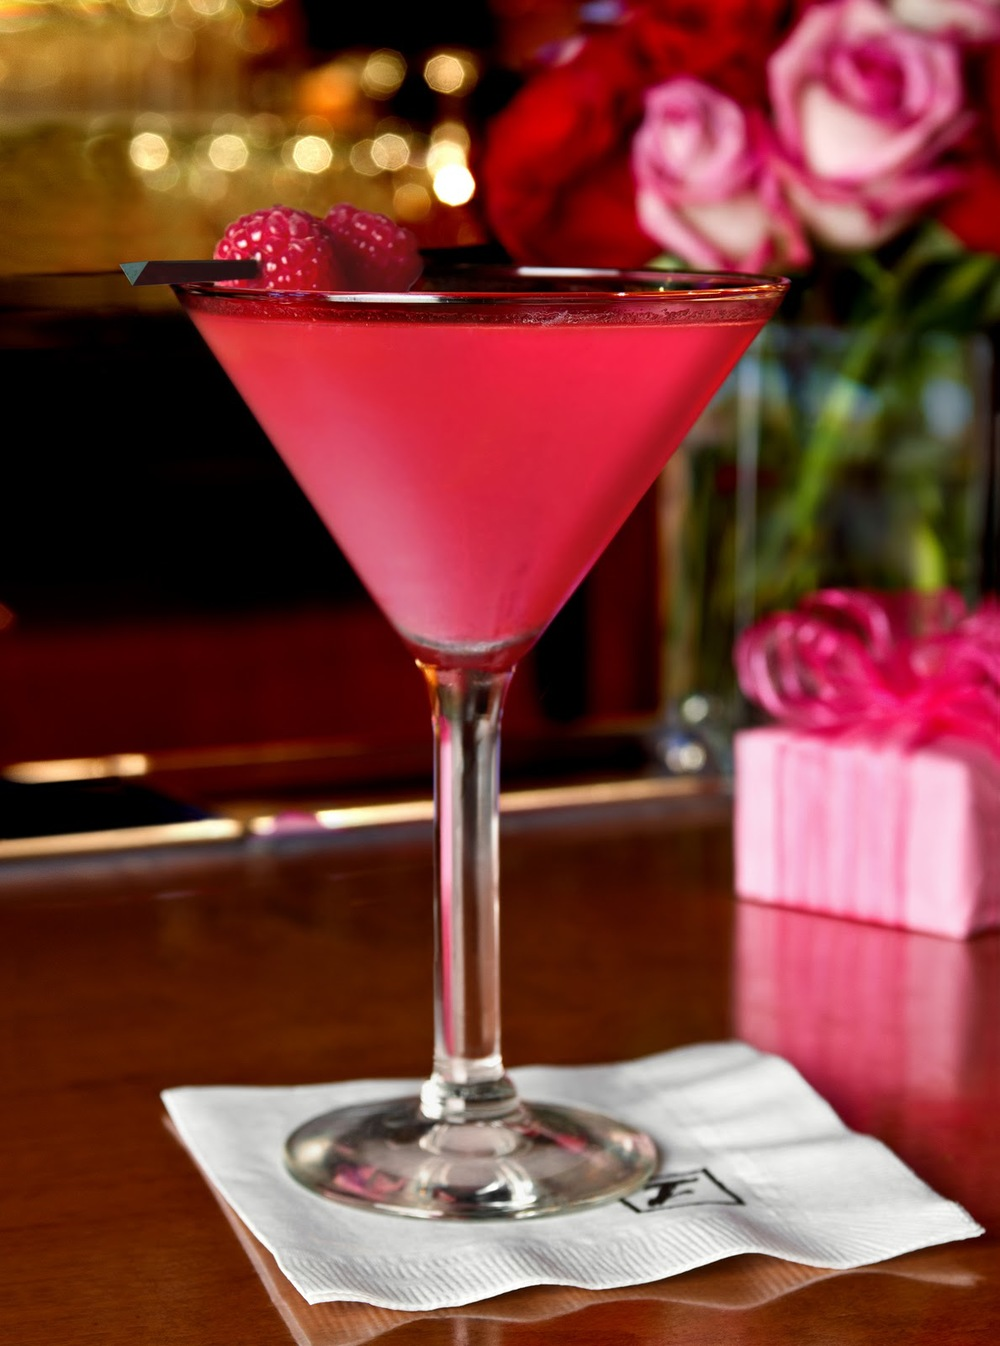 cheers to valentines day with these delicious festive cocktail recipes